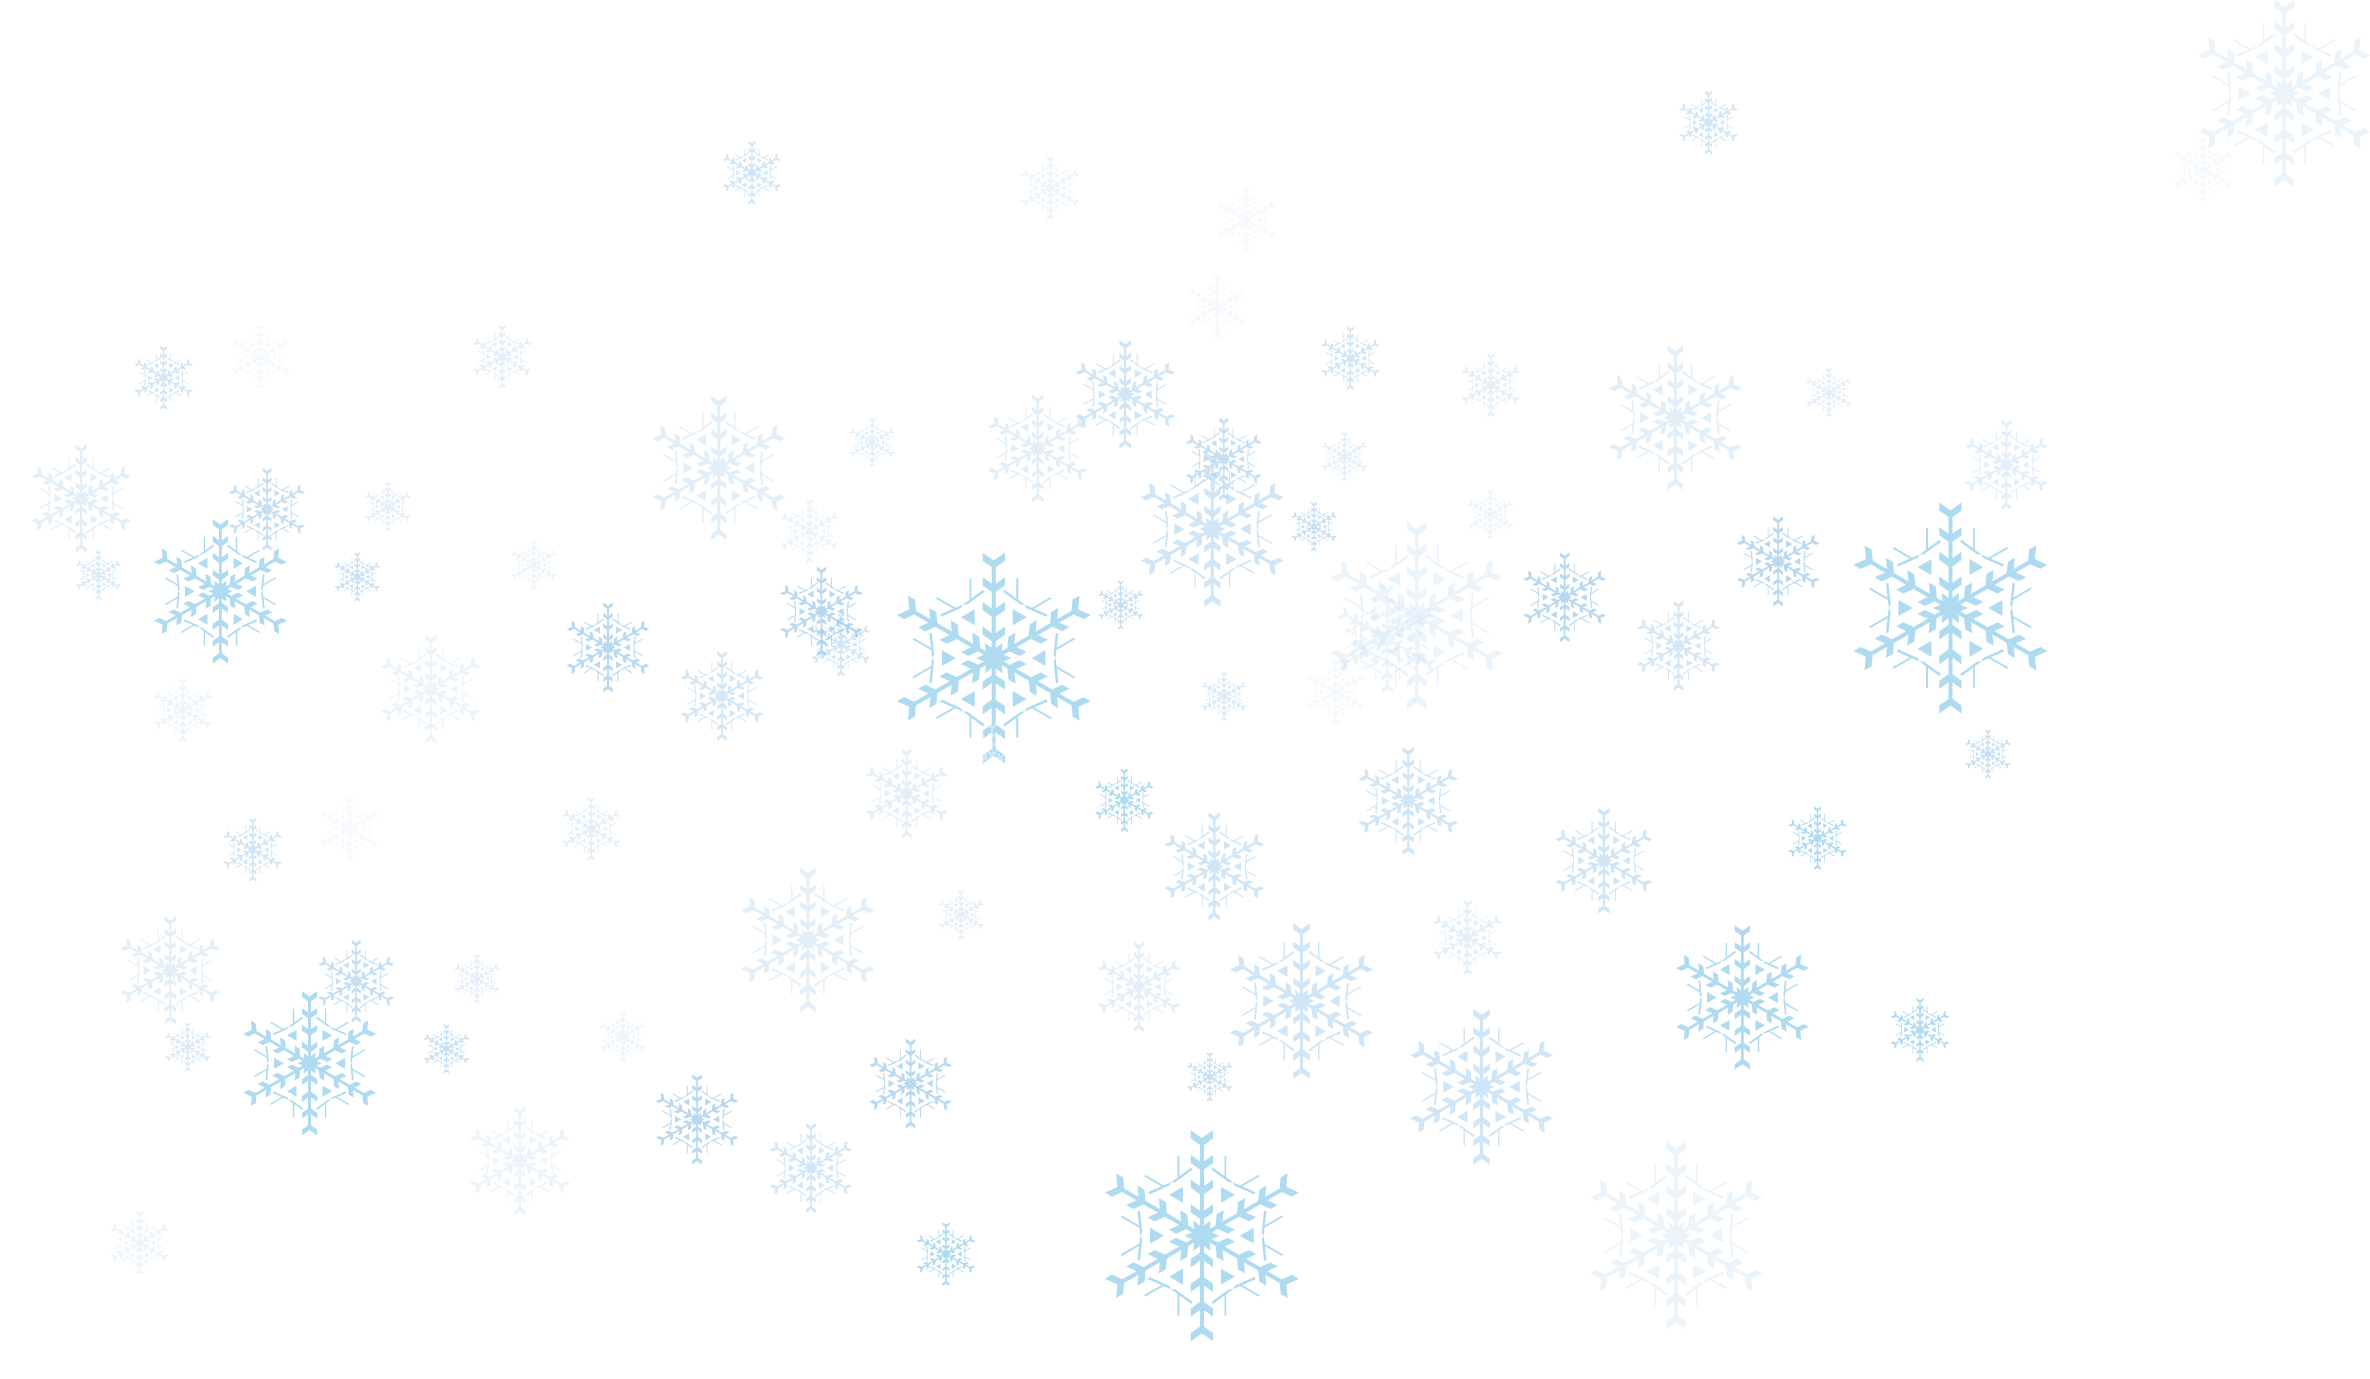 Tasteful snowflake clipart png black and white download 28+ Collection of Snowflake Clipart Background | High quality, free ... png black and white download